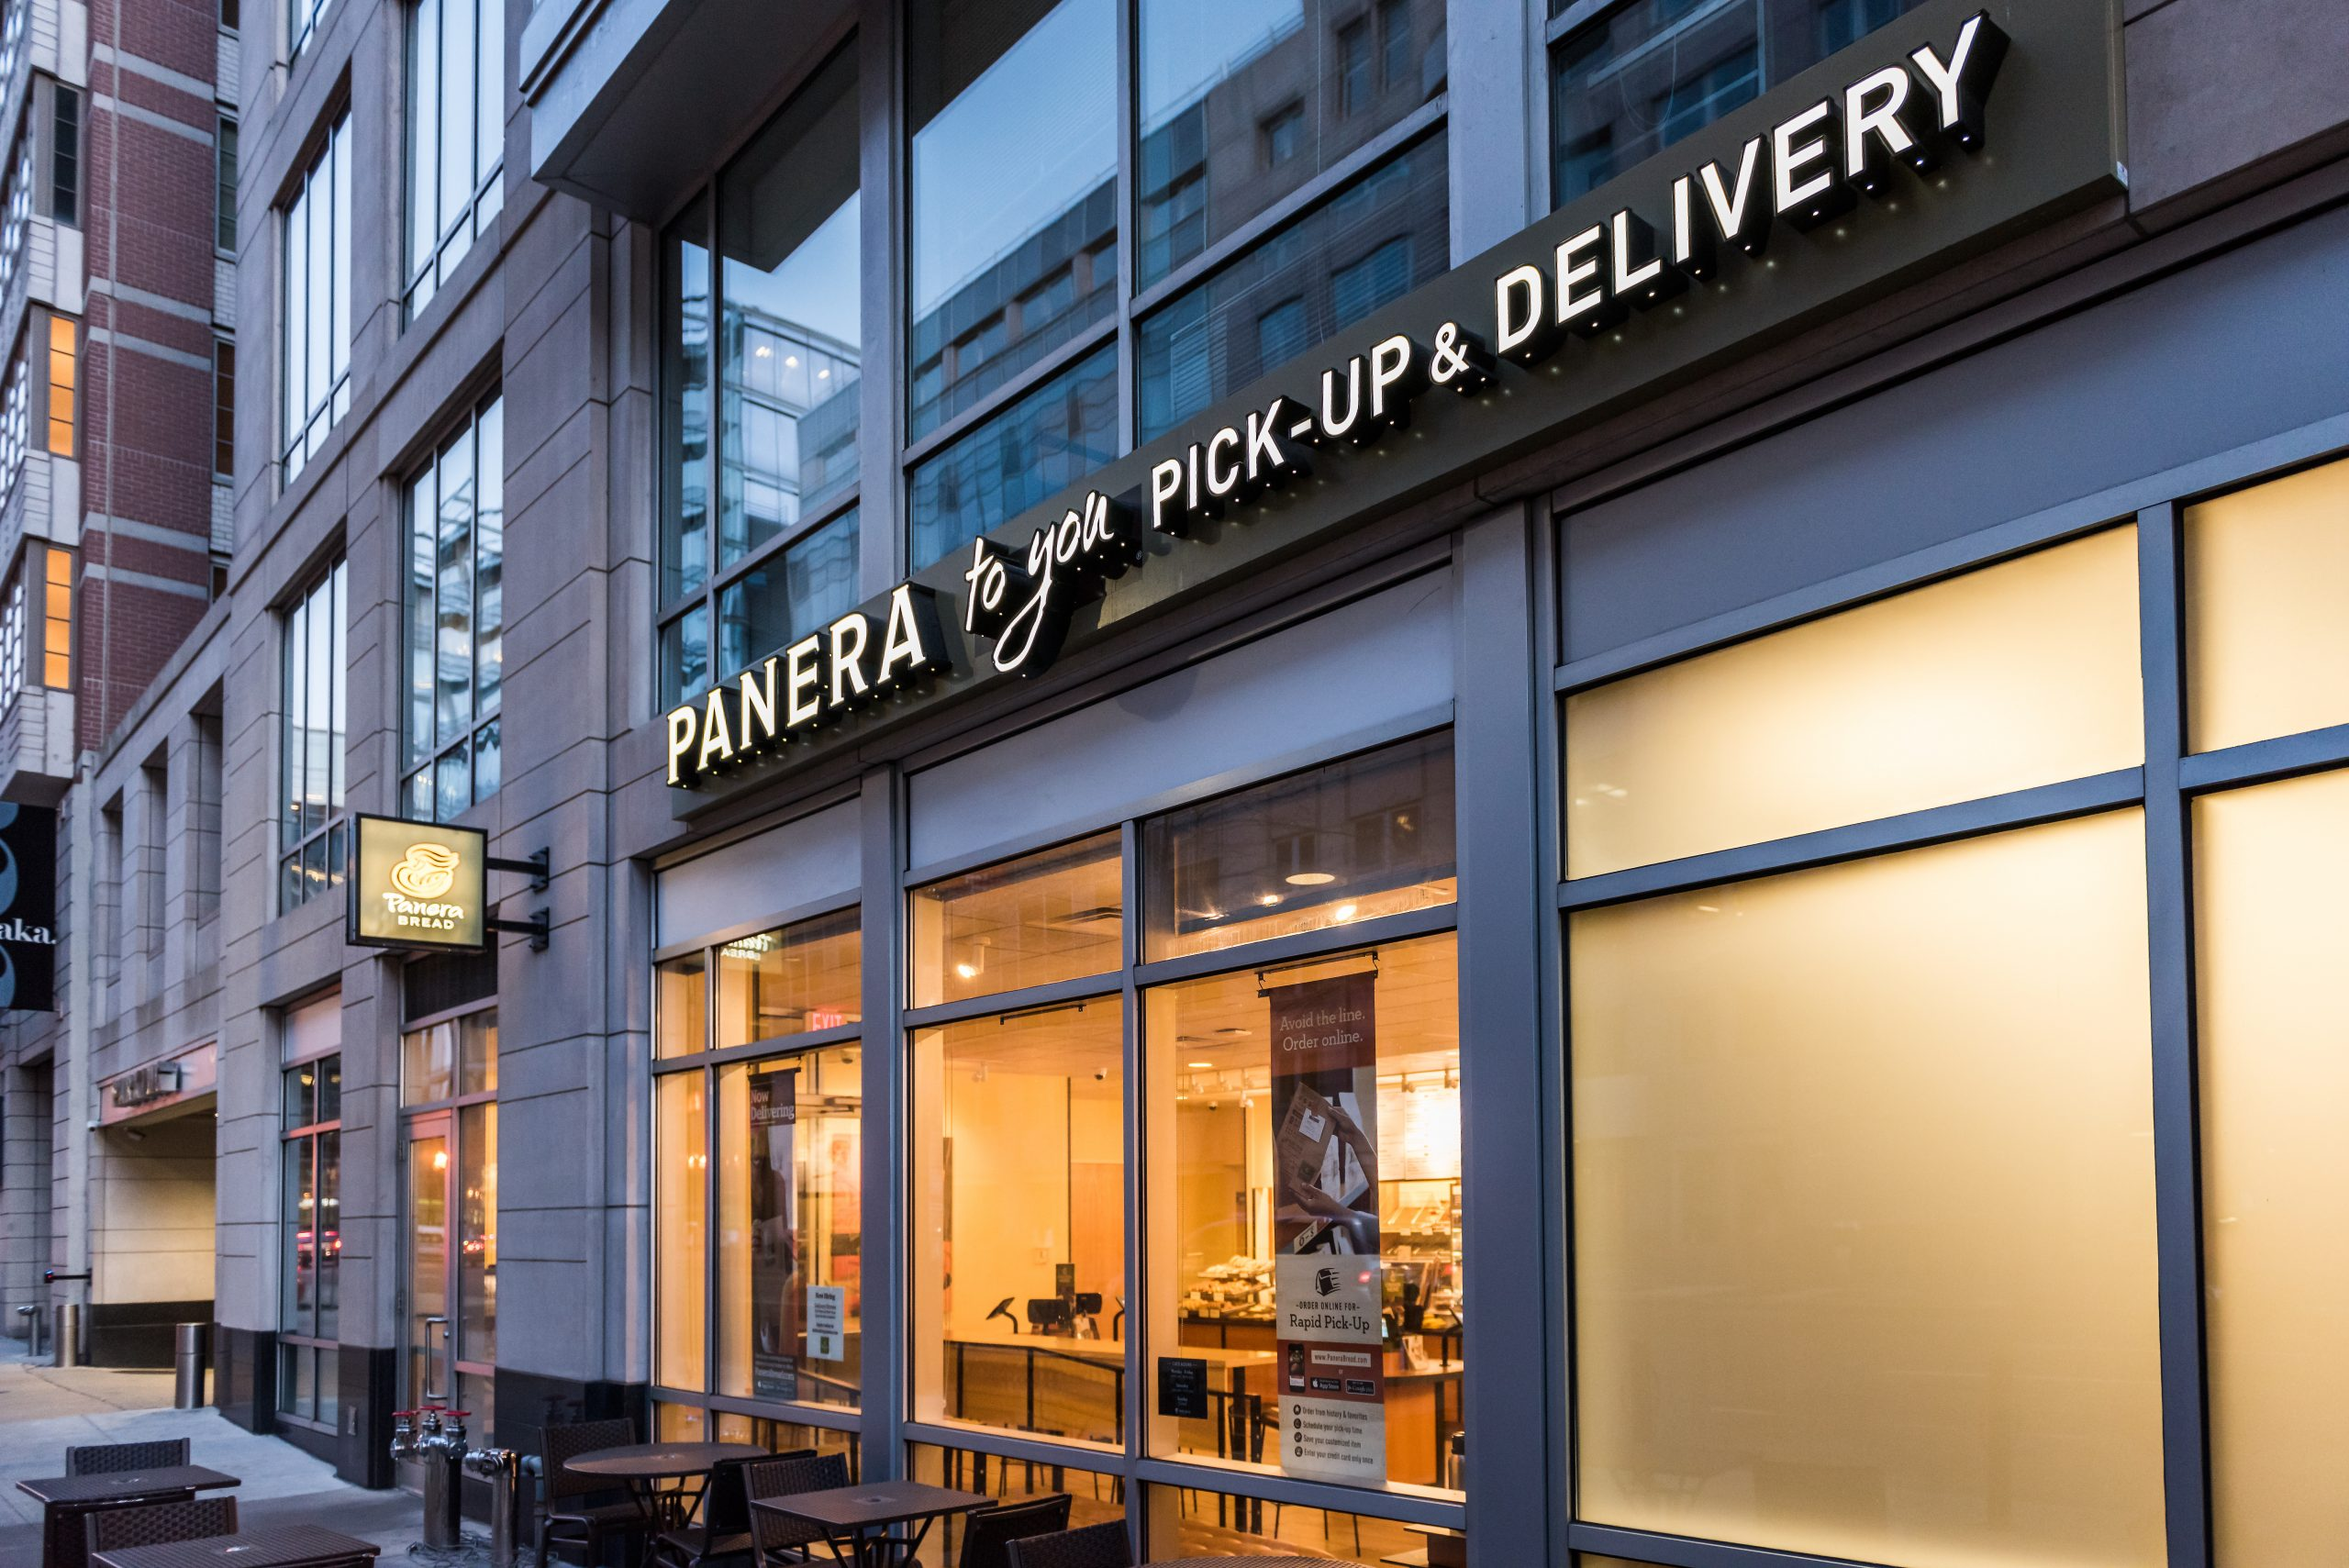 Panera among top brands leveraging Earth Day to show environmental position